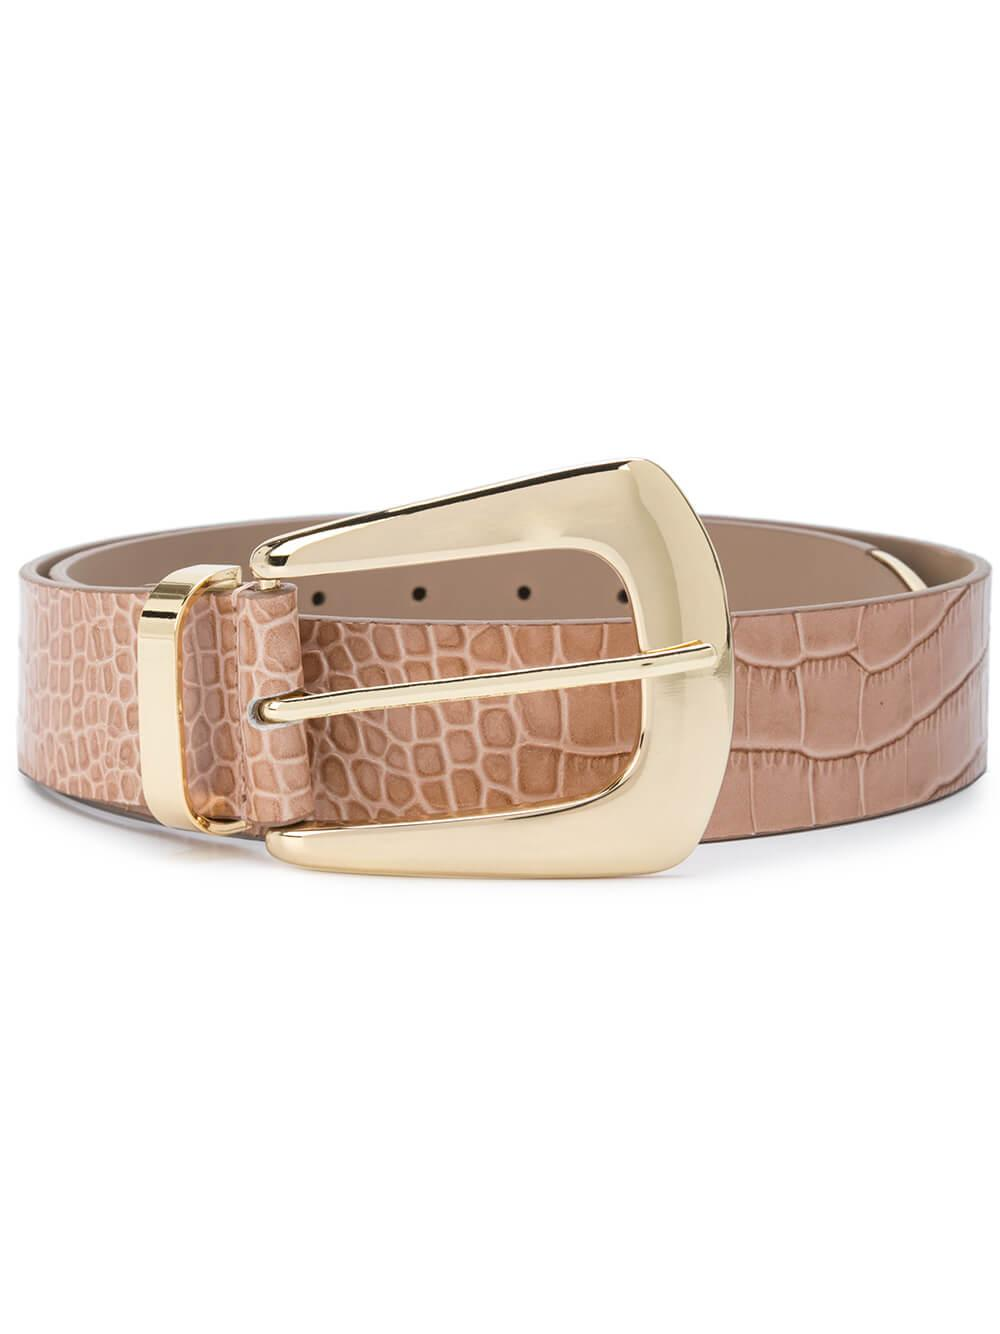 Jordana Mini Croco Belt Item # BH503-710LE